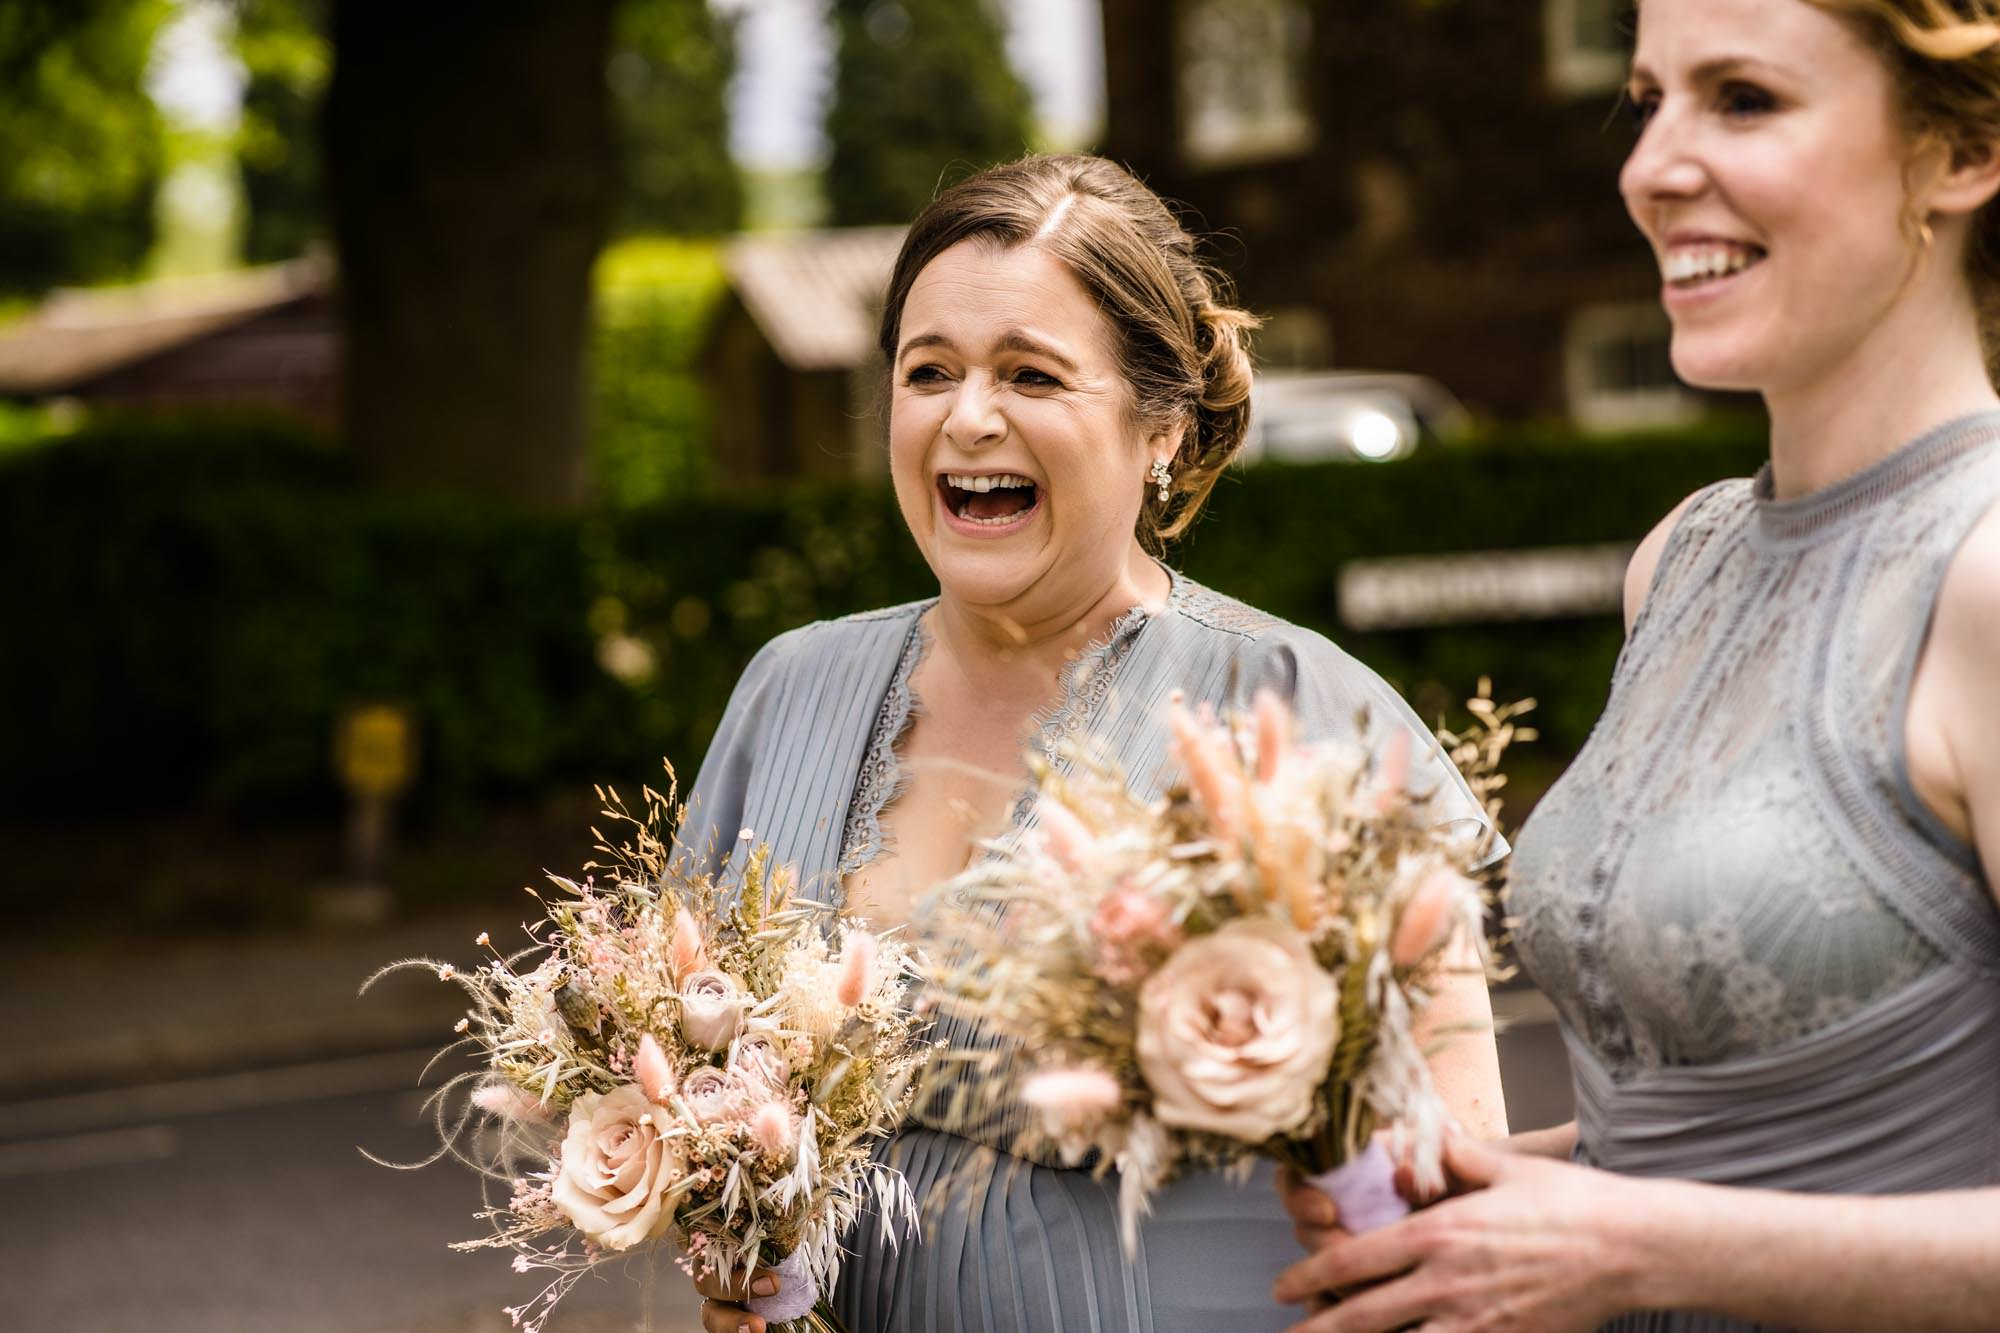 Bridesmaid laughing with wedding bouquet